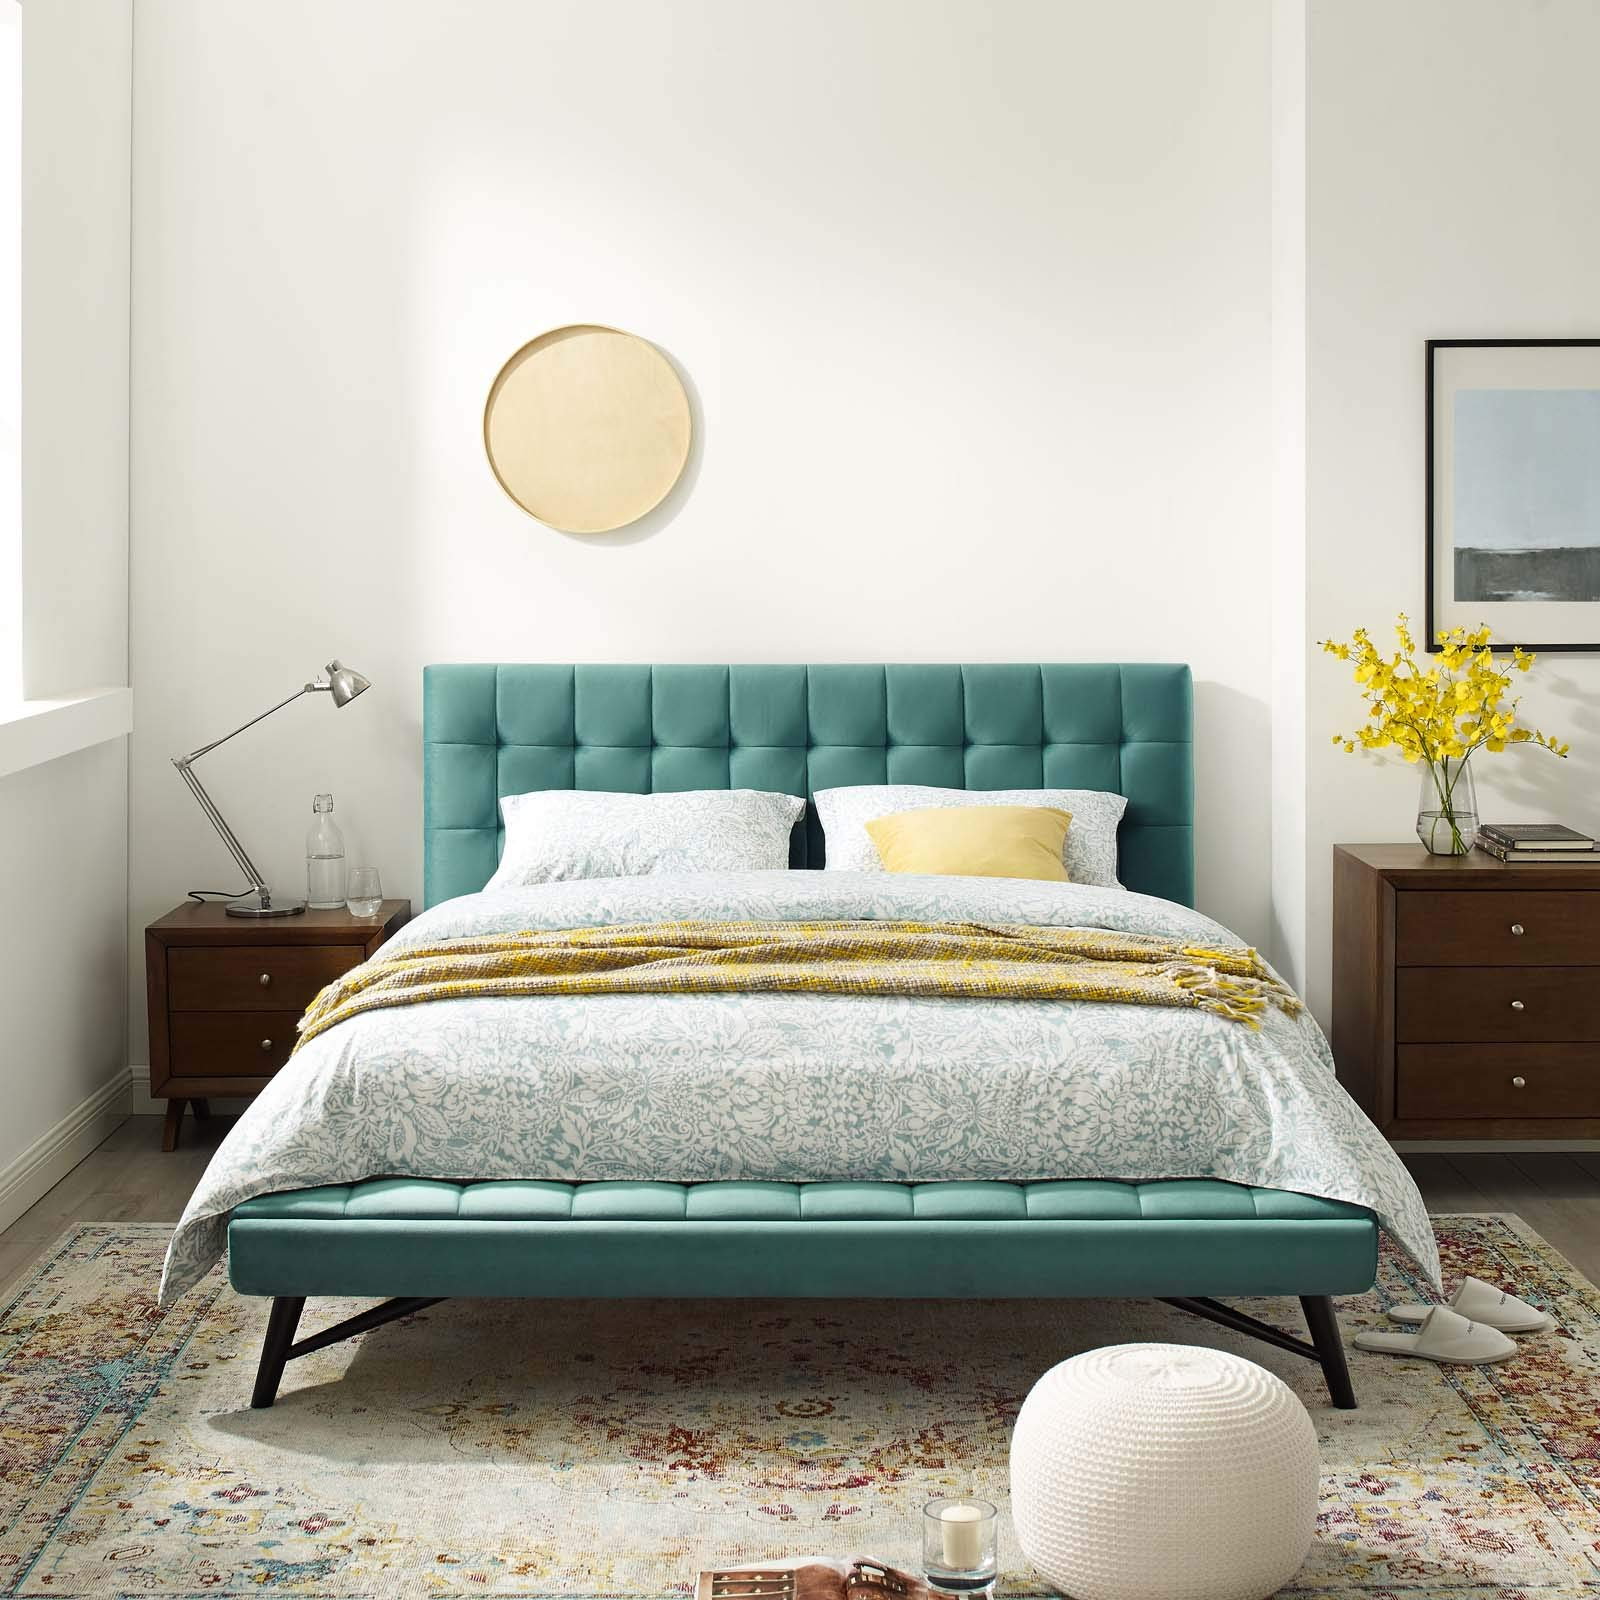 Modway Julia Mid-Century Biscuit Tufted Performance Velvet Queen Platform Bed in Teal by Modway